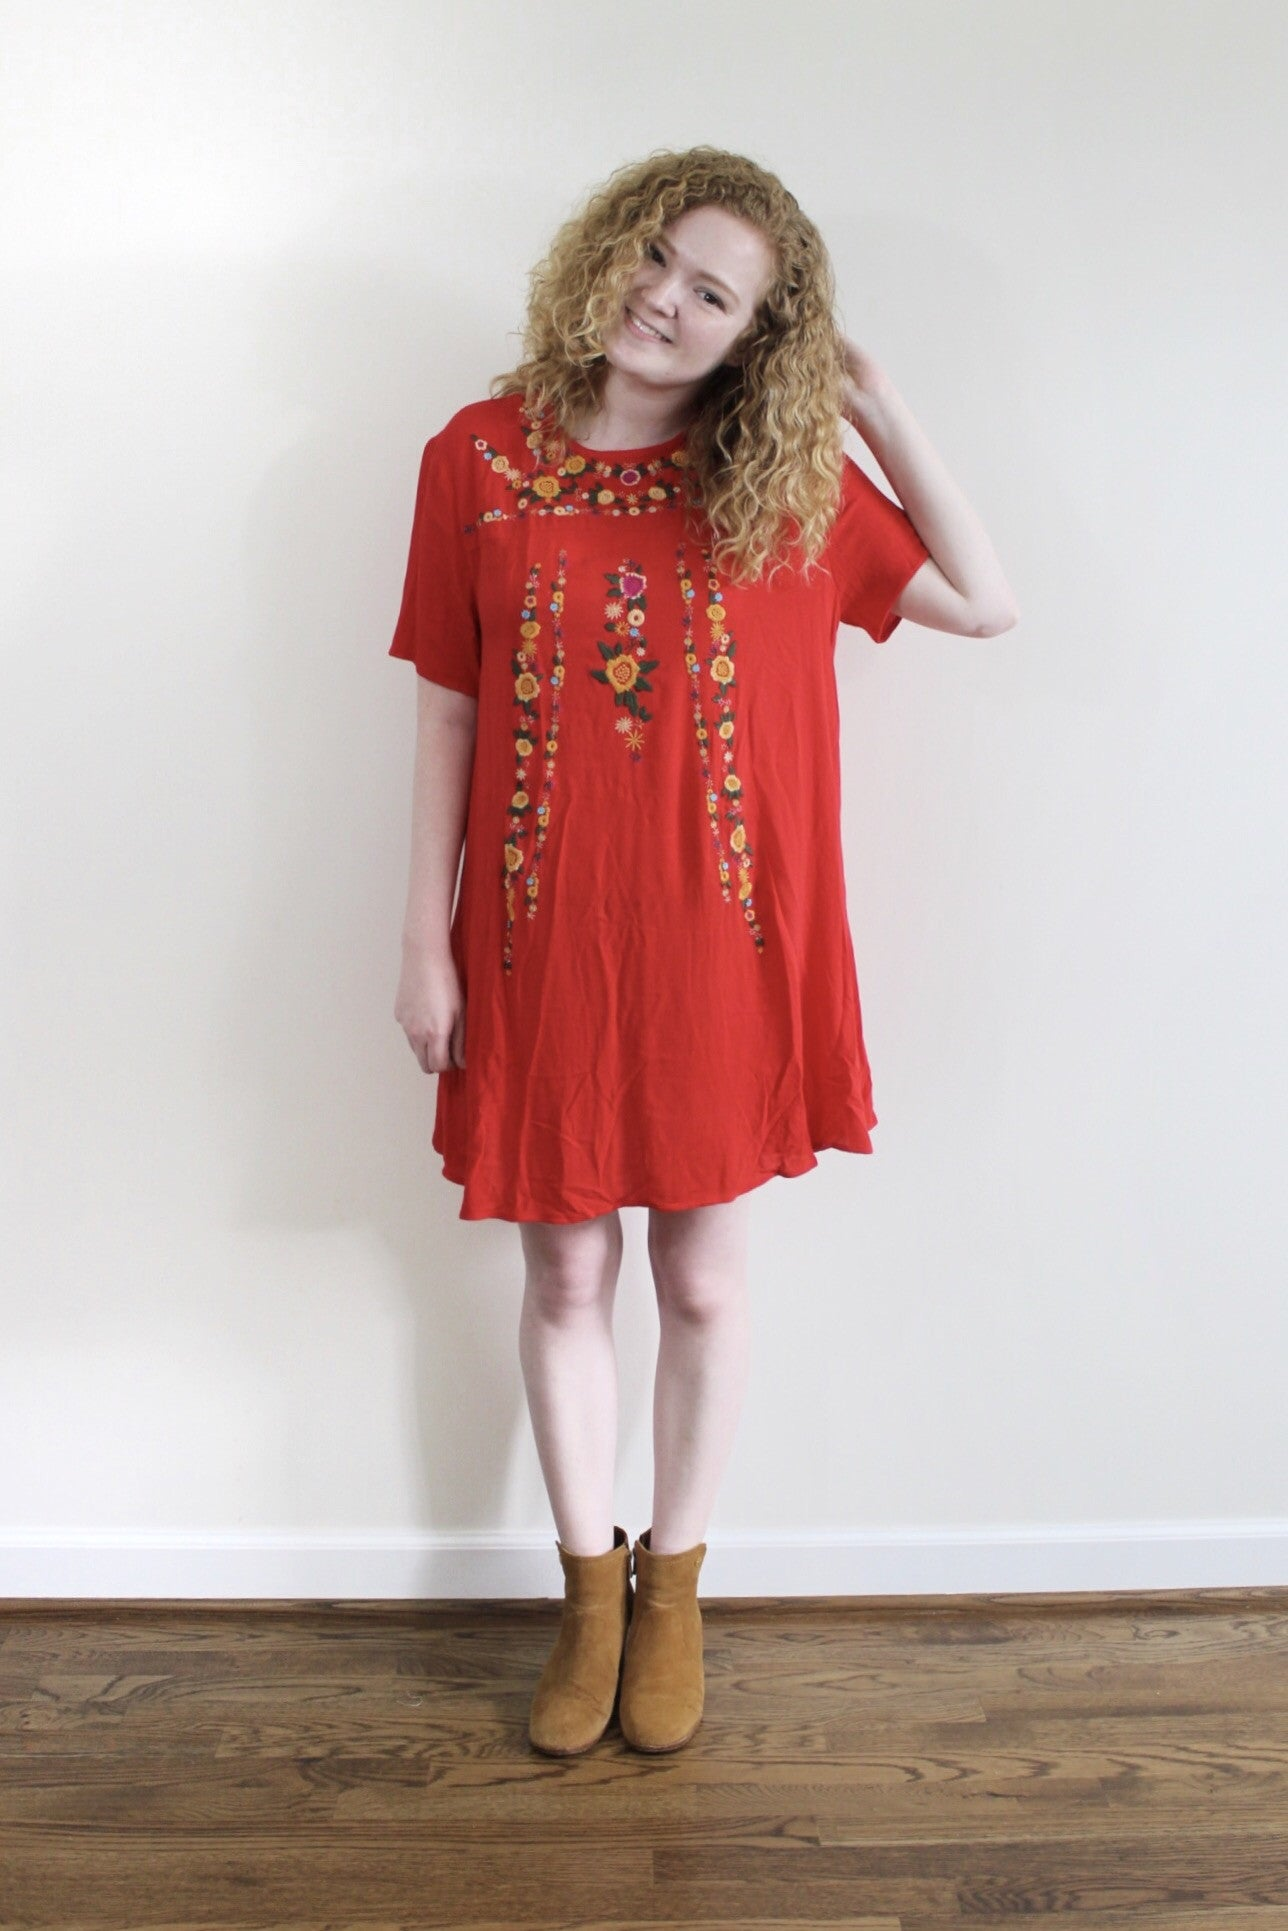 Floral Embroidered Dress - Red and Moon